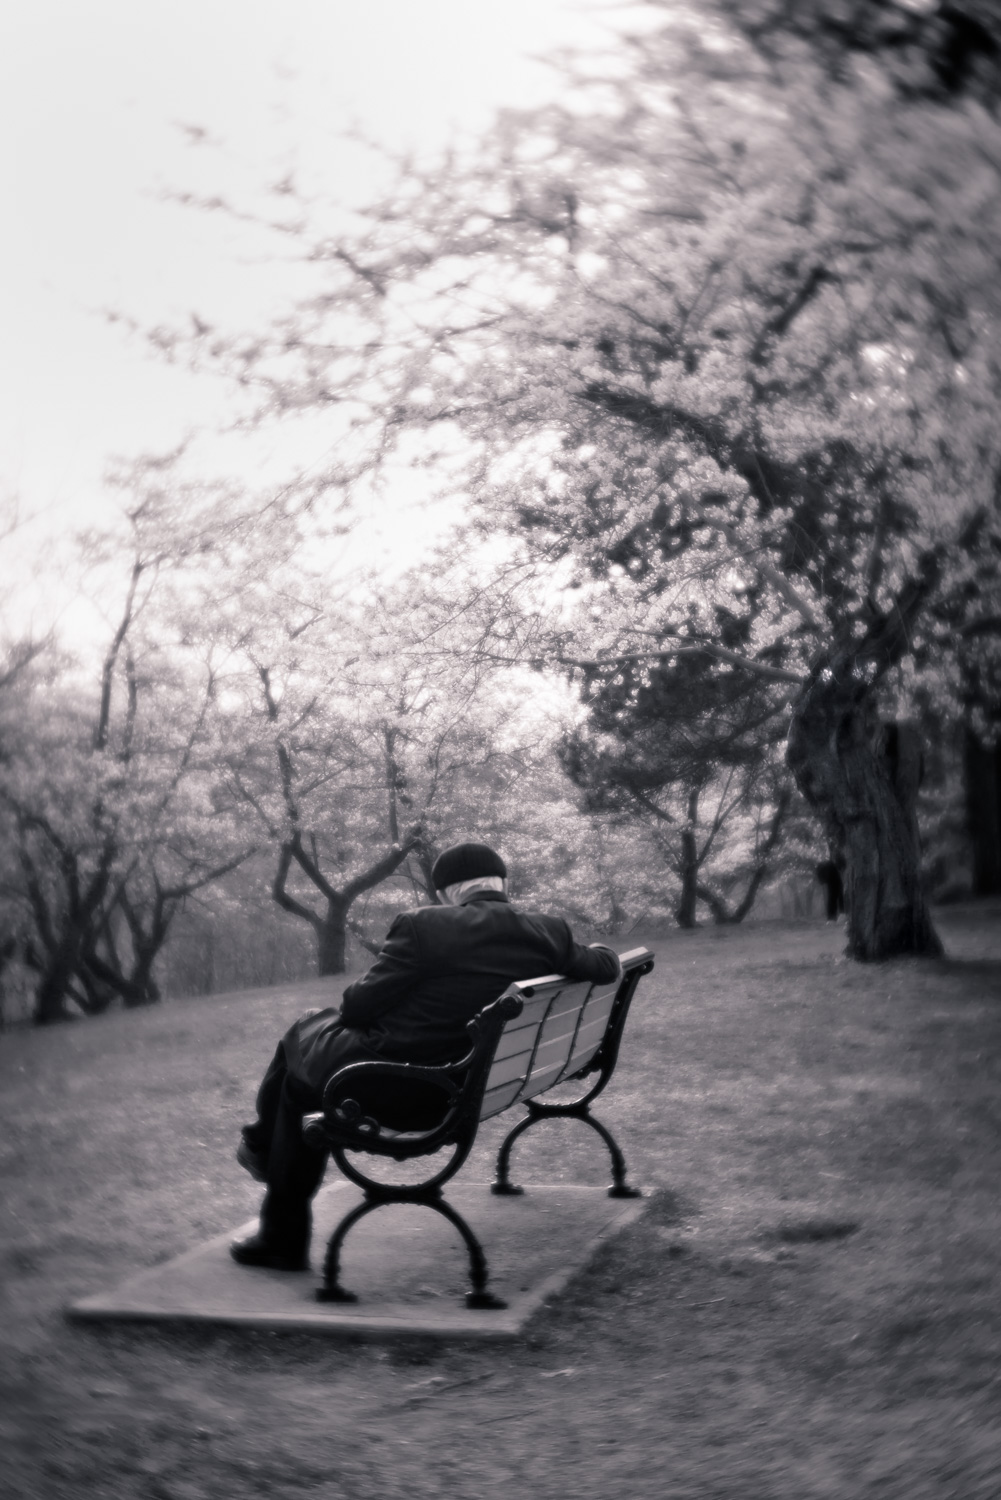 An elderly gentleman sits on a park bench and enjoys the cherry blossoms in High Park, Toronto.